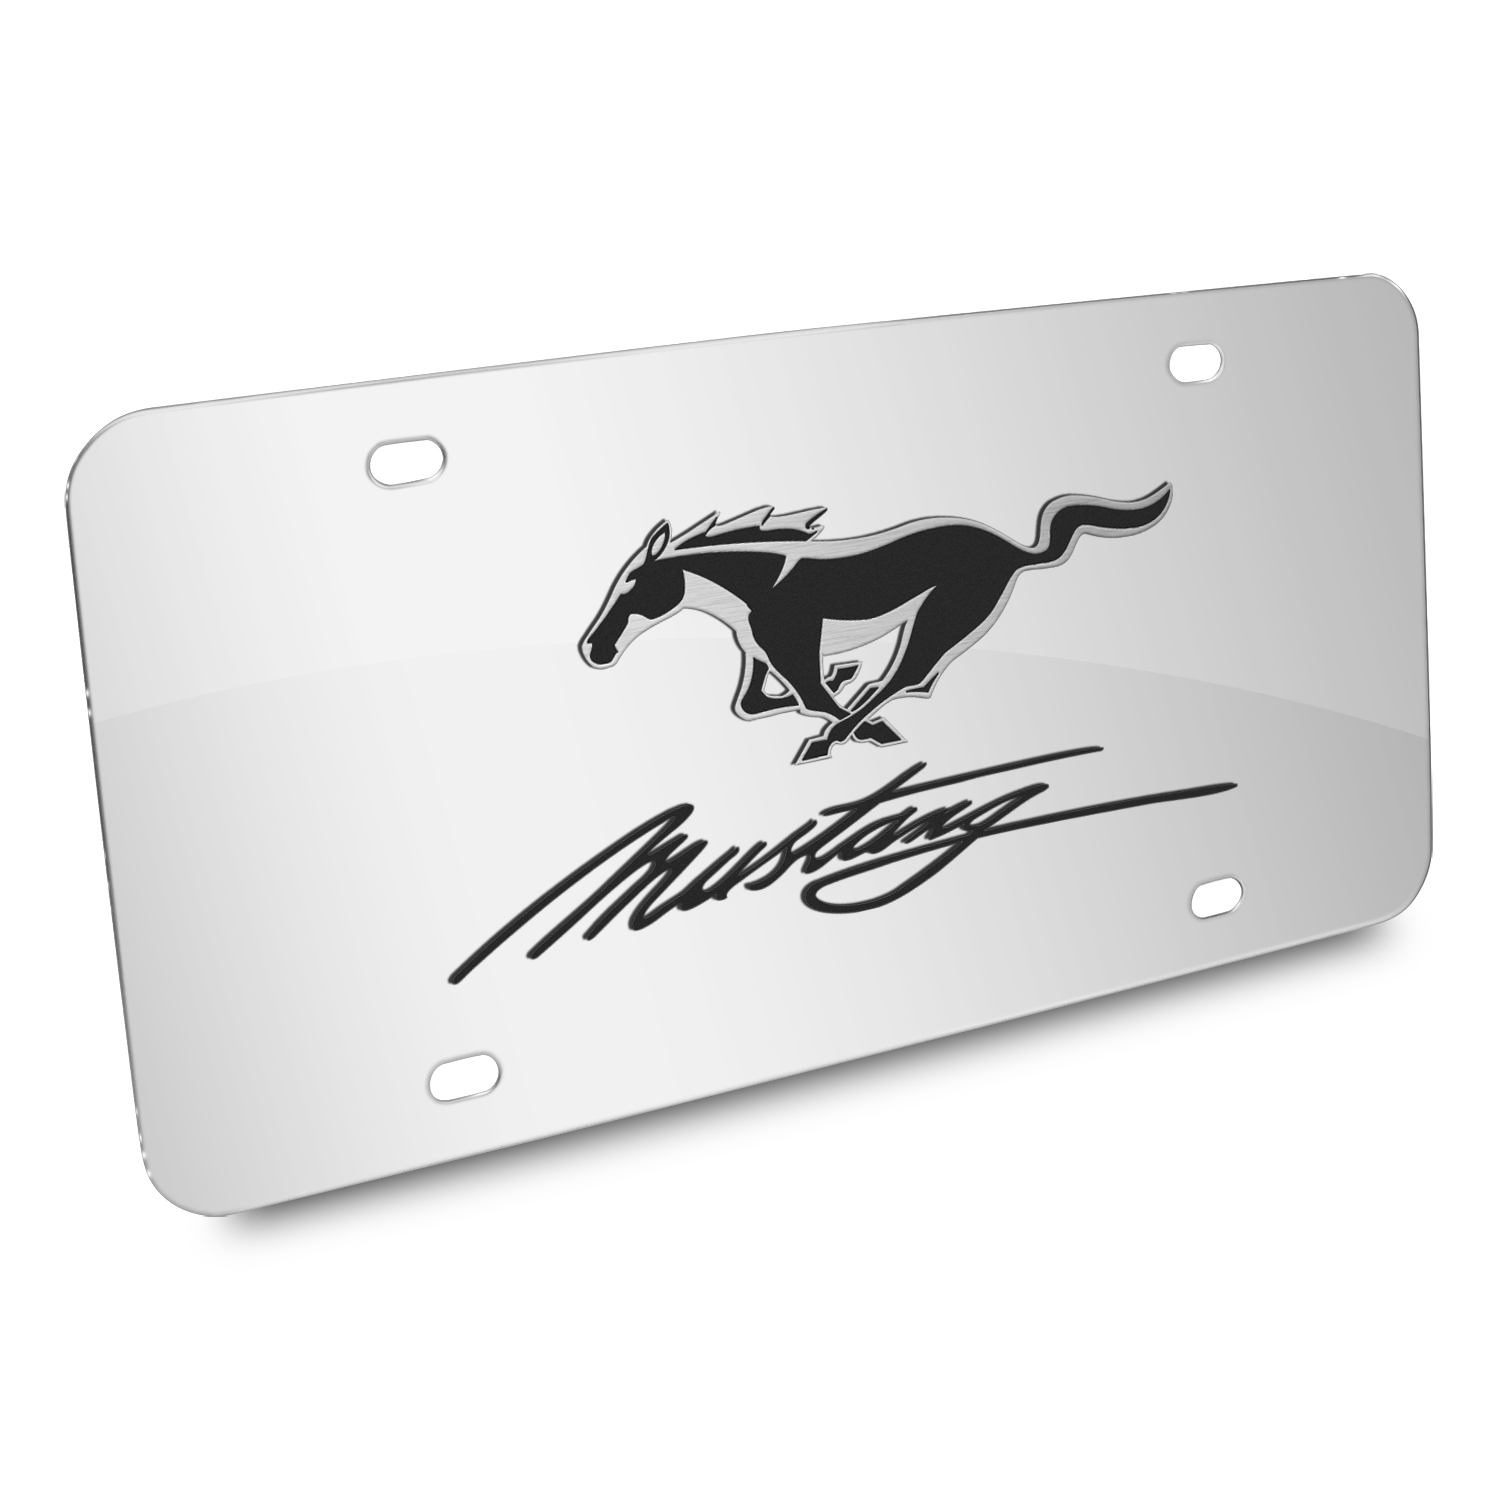 Ford Mustang Pony and Script 3D Mirror Chrome Stainless Steel License Plate